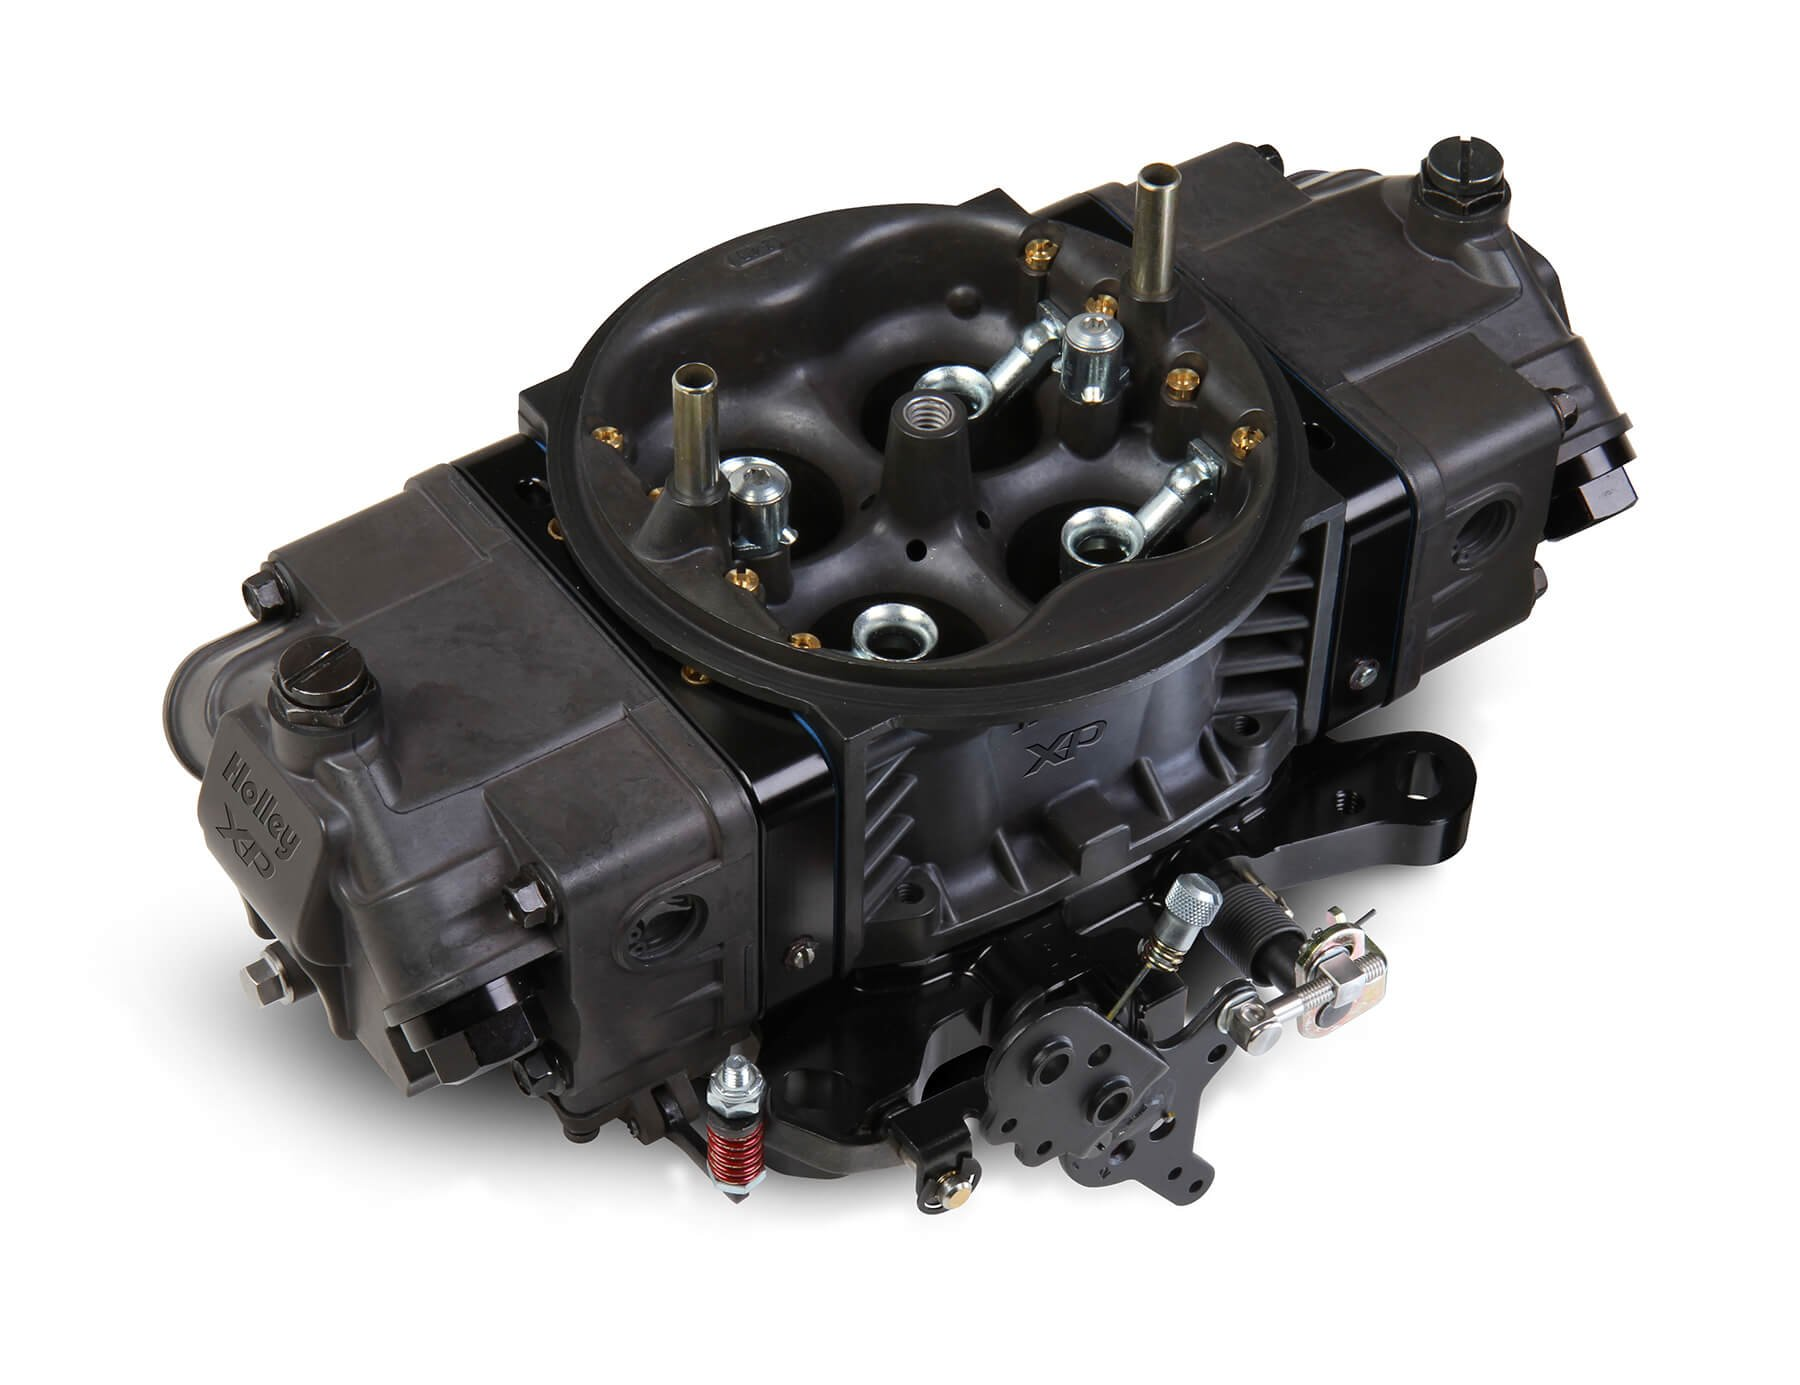 600CFM Ultra XP Carburetor